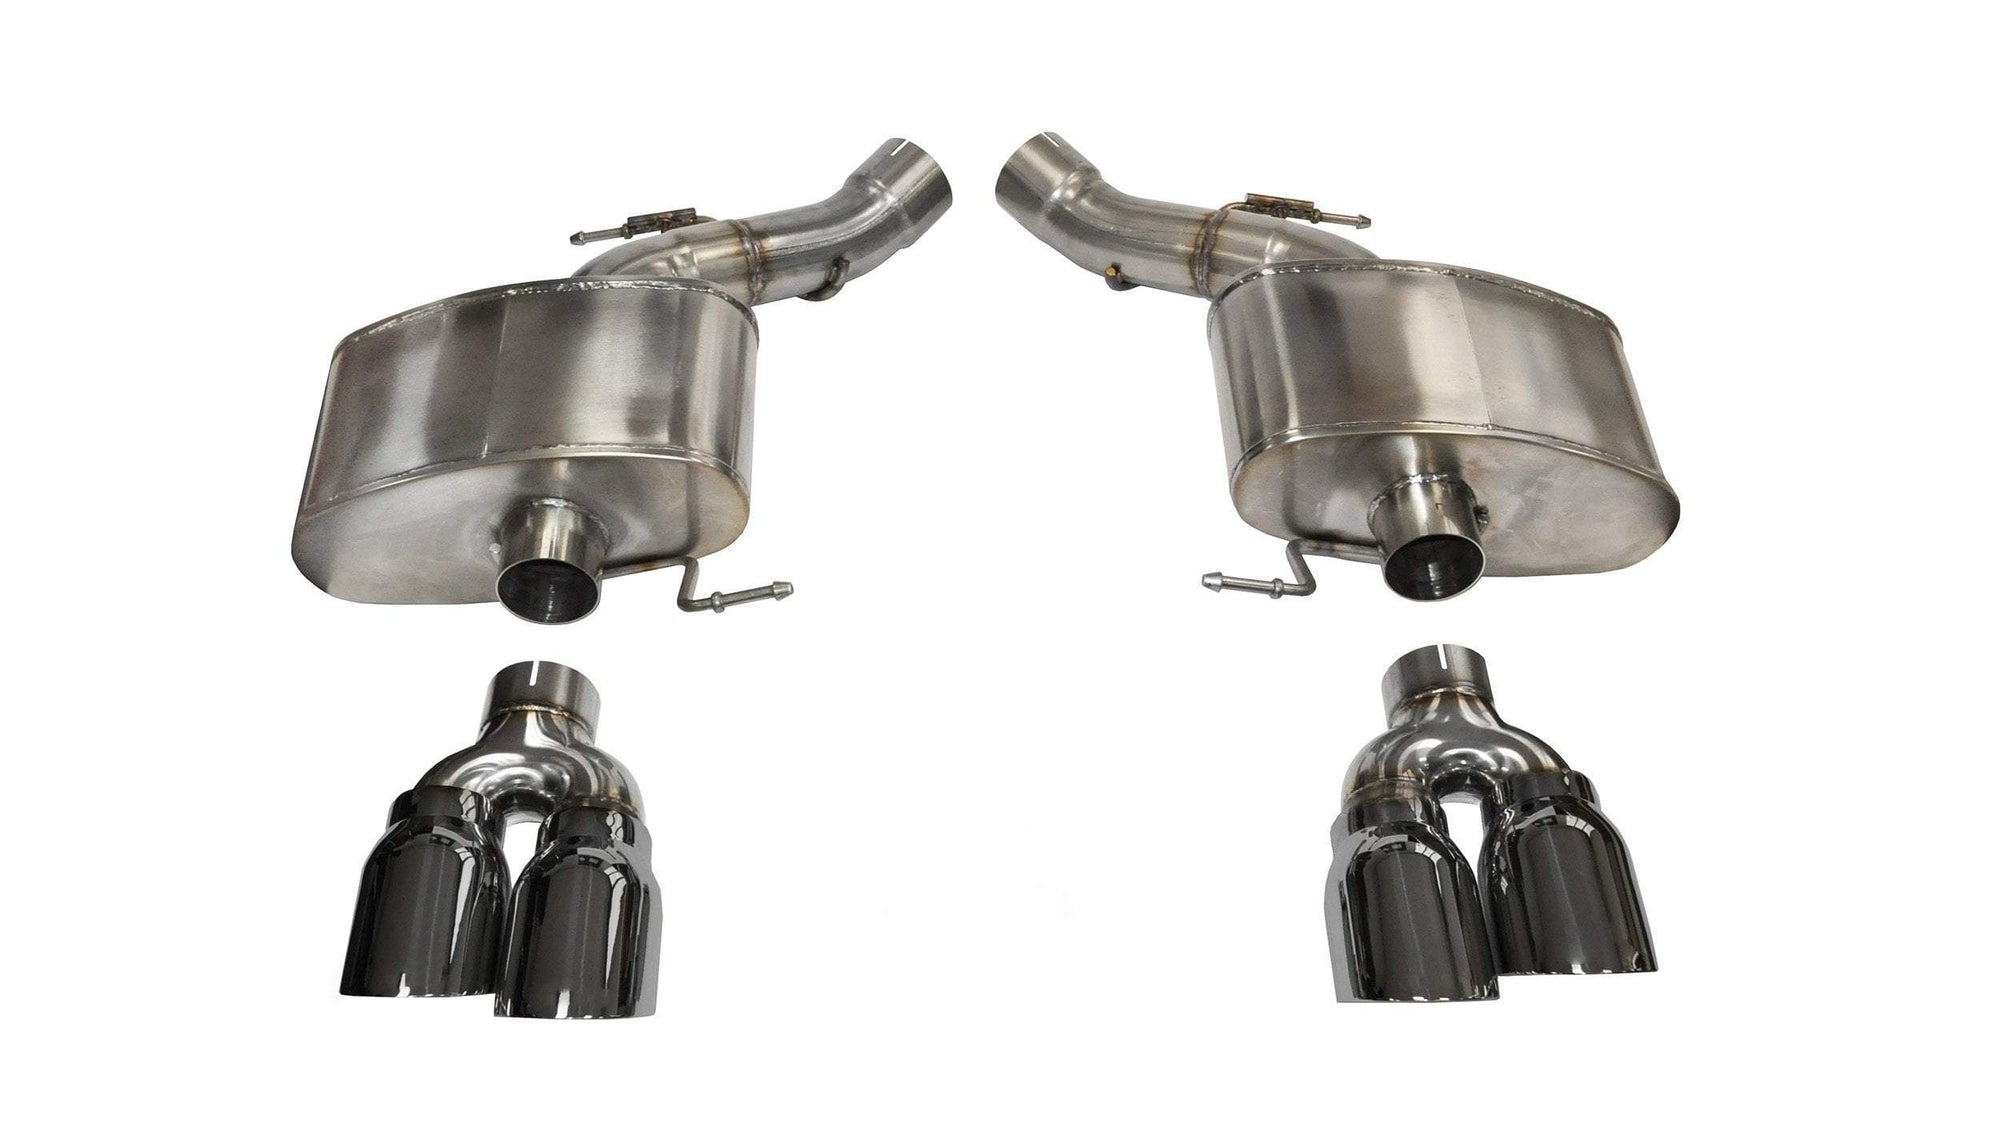 "CORSA PERFORMANCE Axle-Back Exhaust Polished / Sport / Dual Rear - Twin 4.0in 3.0"" Dual Rear Exit Axle-Back Exhaust System with Twin 4.0"" Tips (14929) Sport Sound Level"